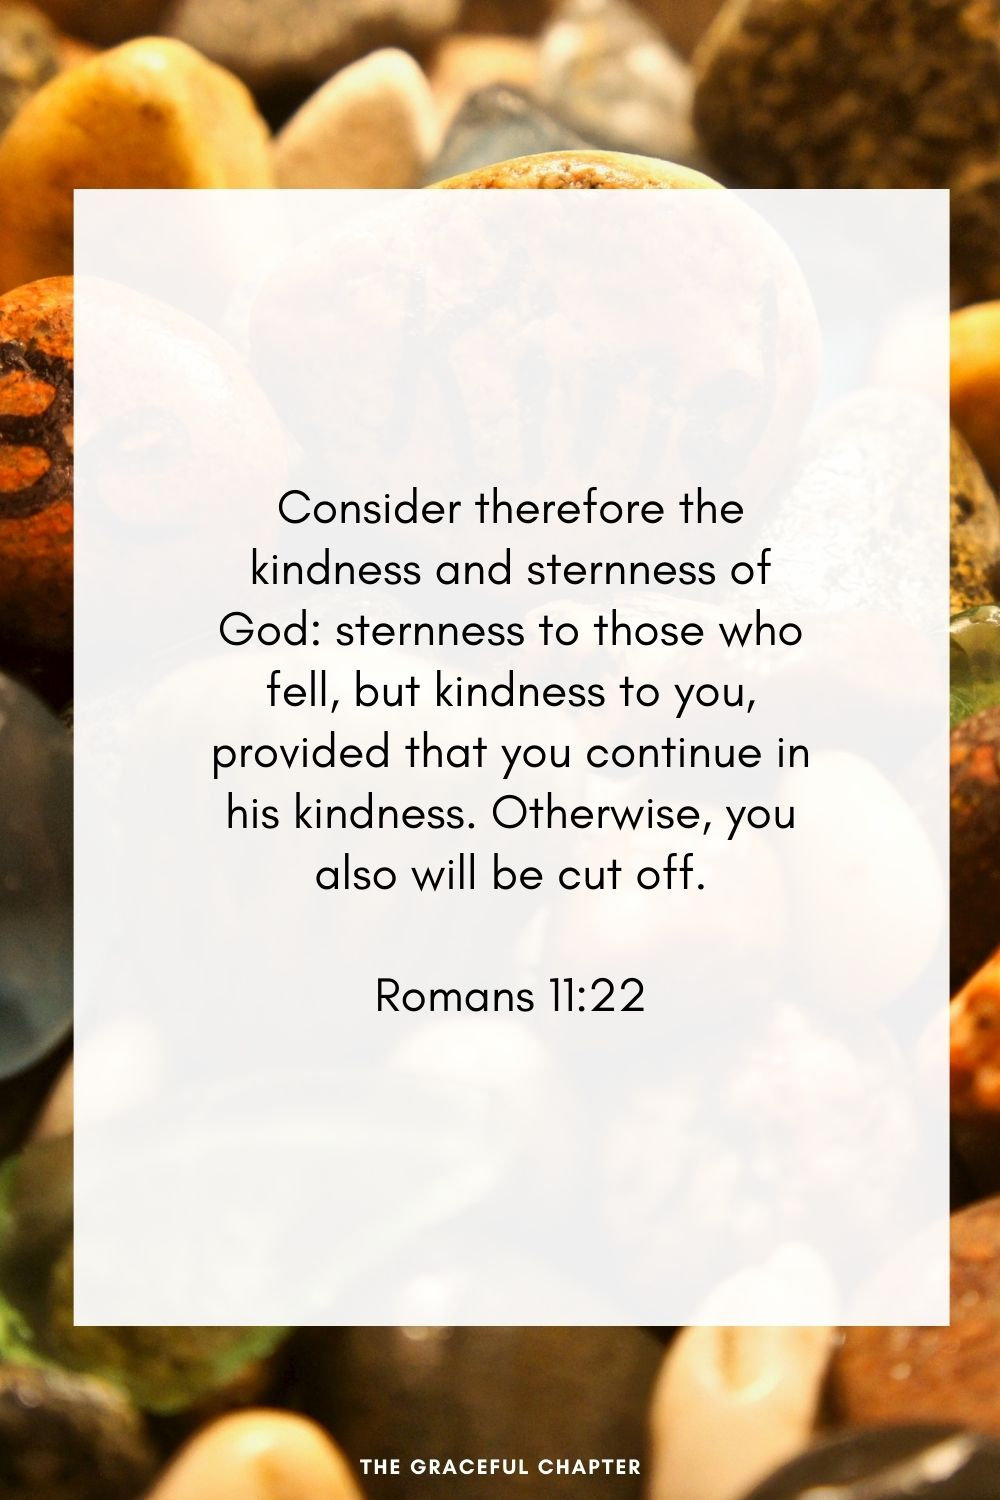 Consider therefore the kindness and sternness of God: sternness to those who fell, but kindness to you, provided that you continue in his kindness. Otherwise, you also will be cut off. Romans 11:22